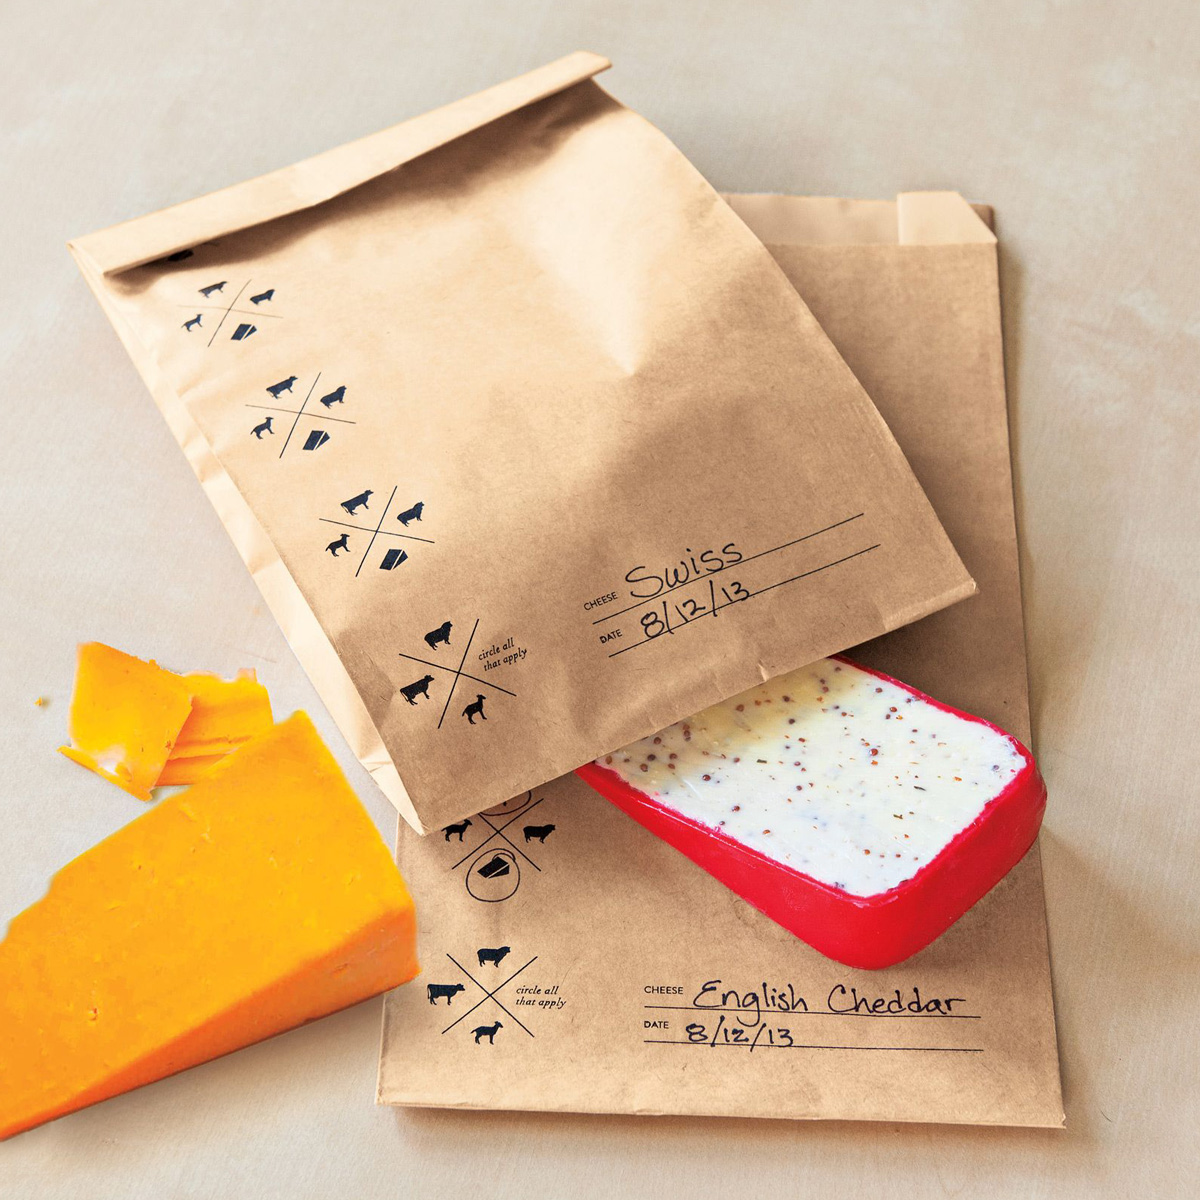 Gear Cheese Storage Wraps Formaticum Cheese Bags Atkgear